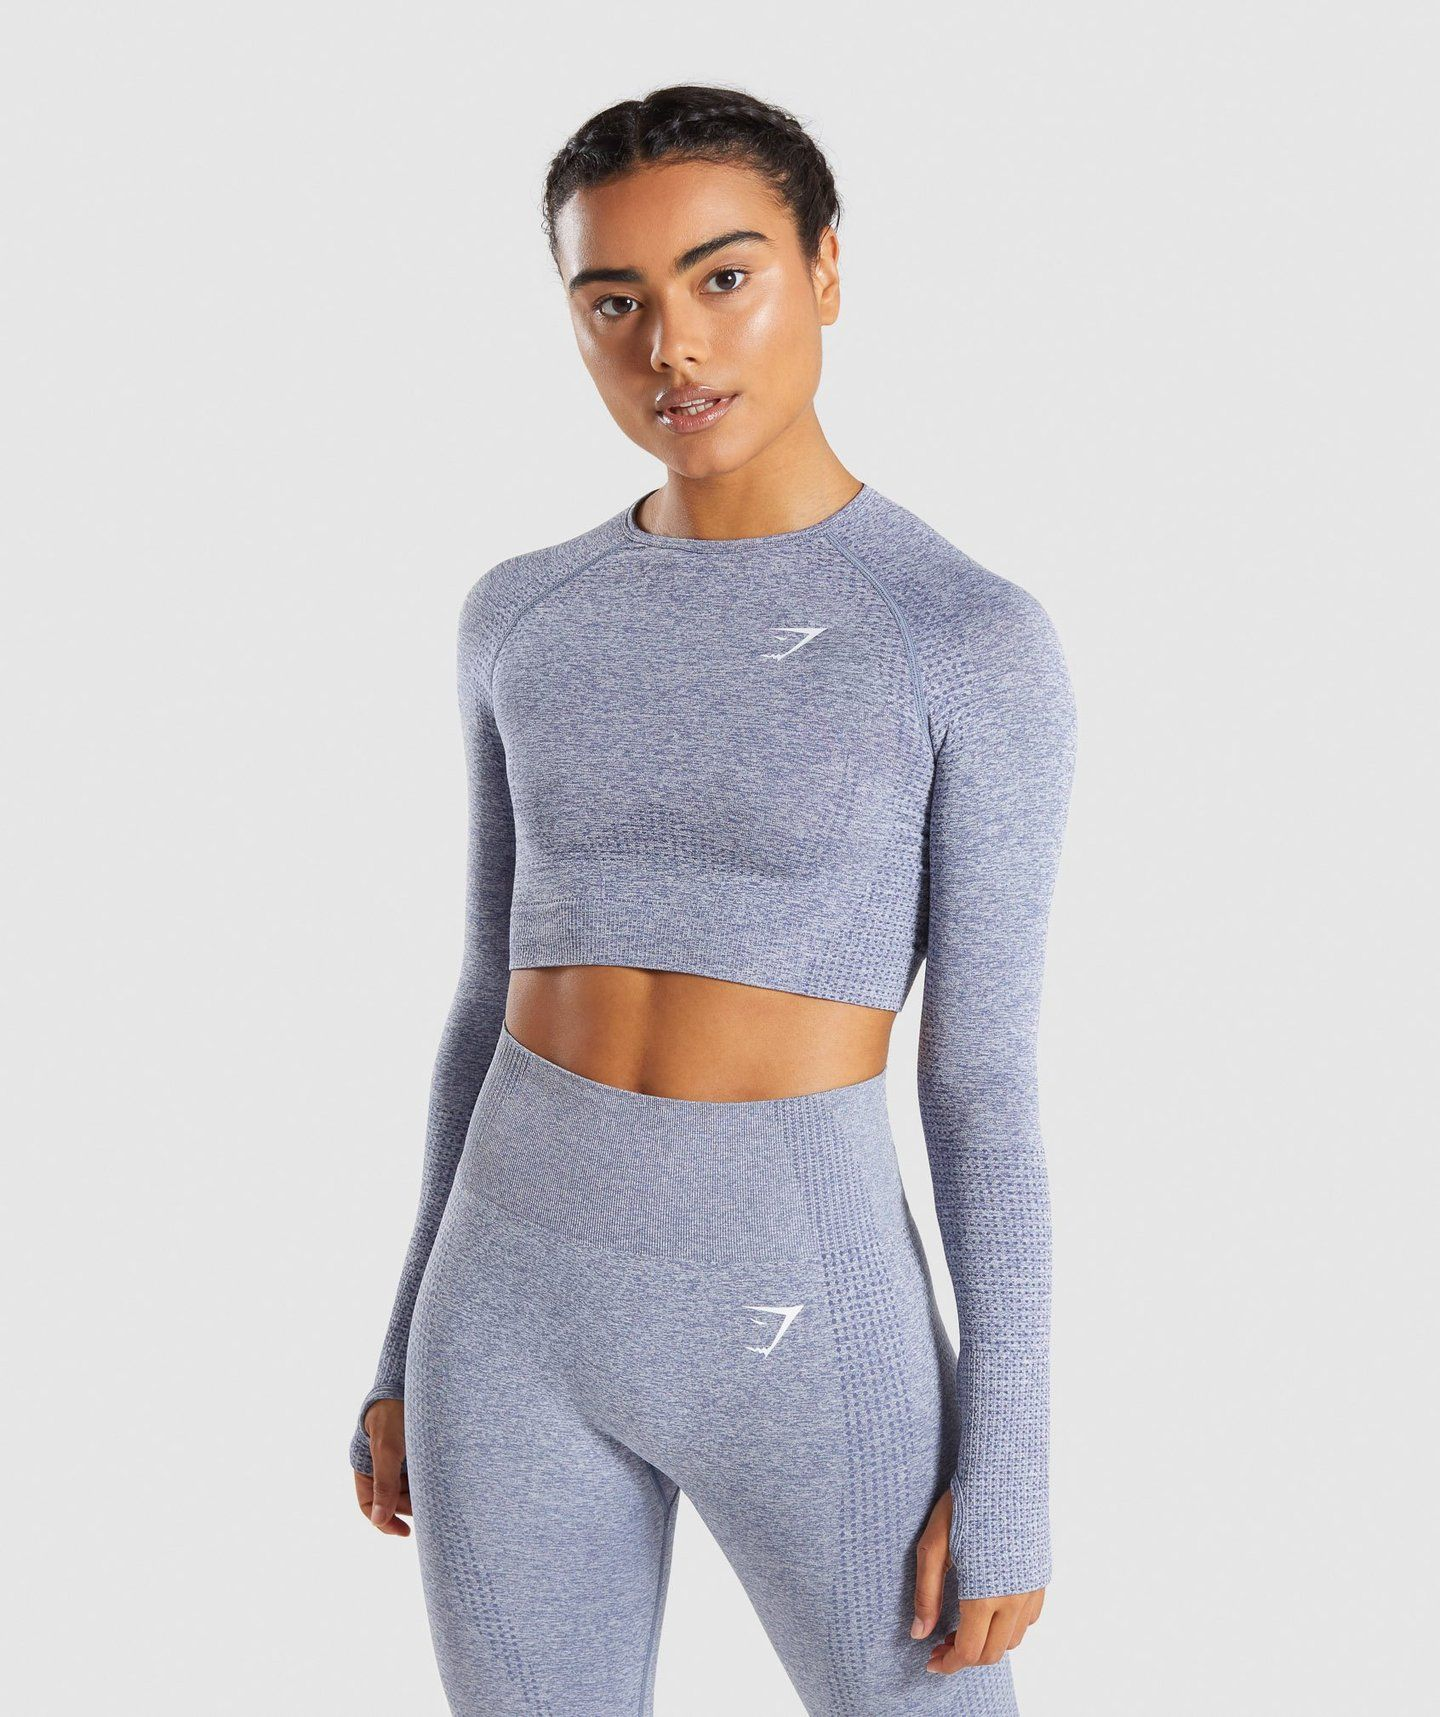 ff53dde4faa7dc Gymshark Vital Long Sleeve Crop Top - Steel Blue Marl - Extra Small ...